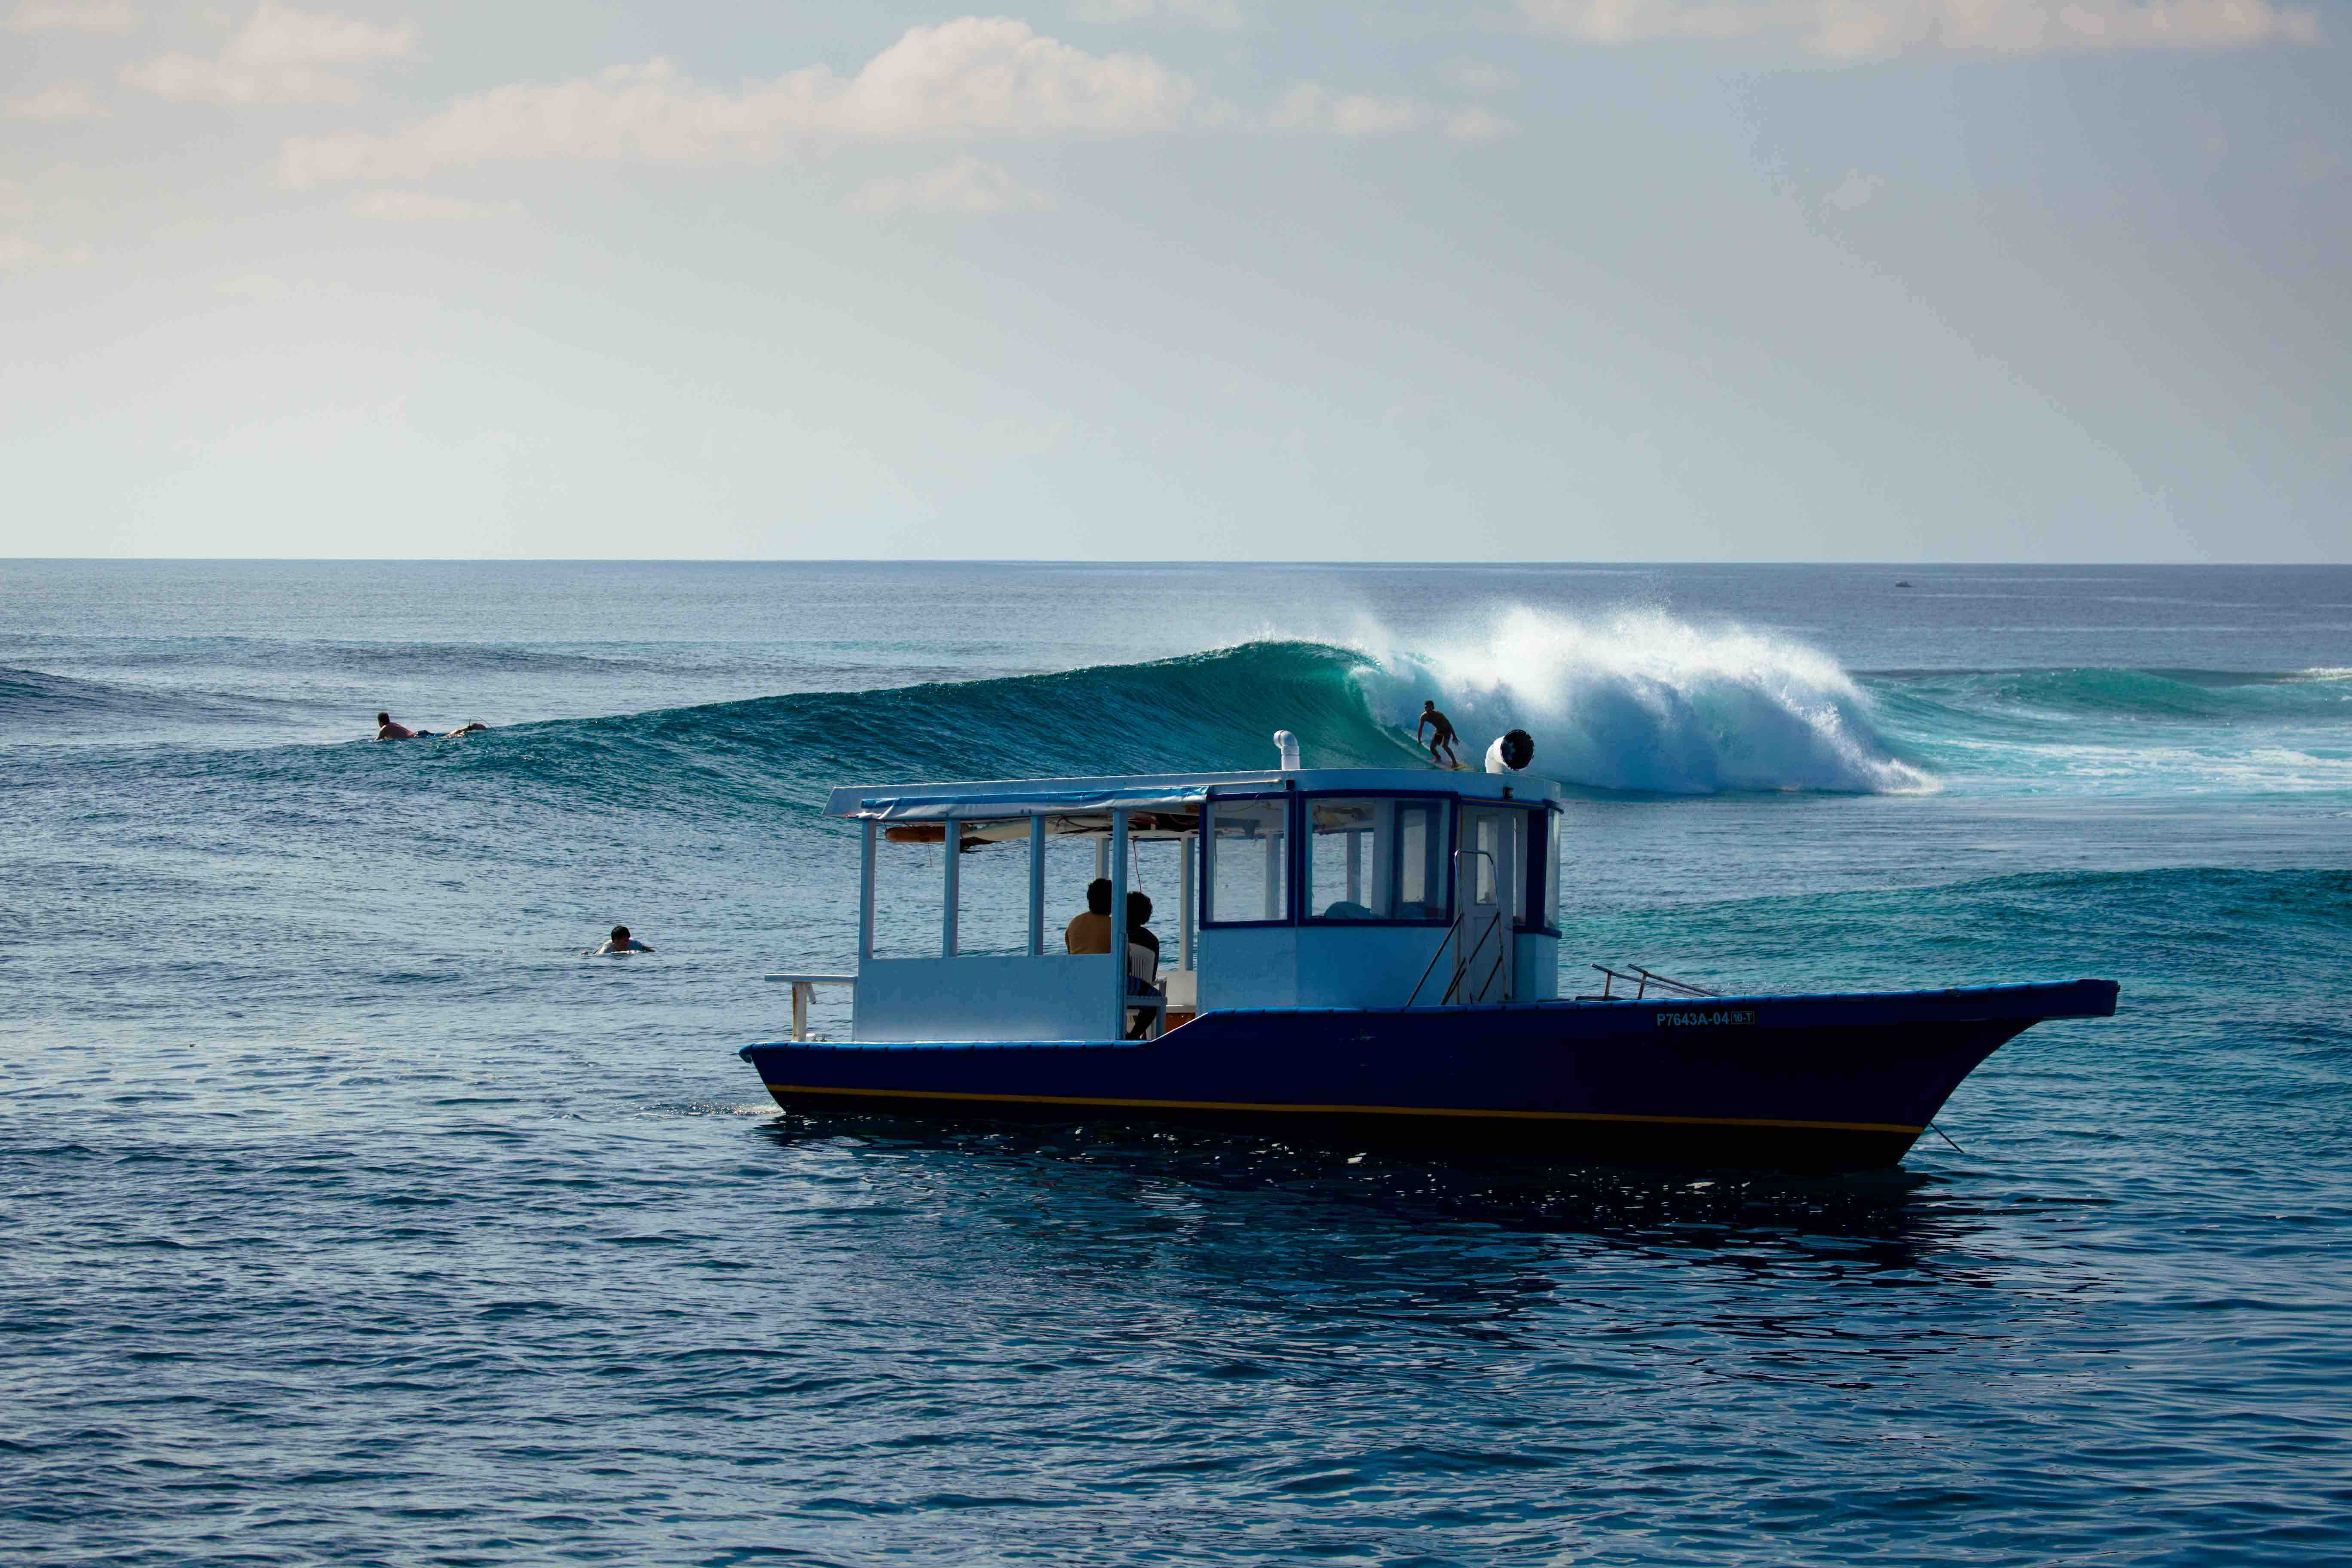 Riptides reef offers variety nearby